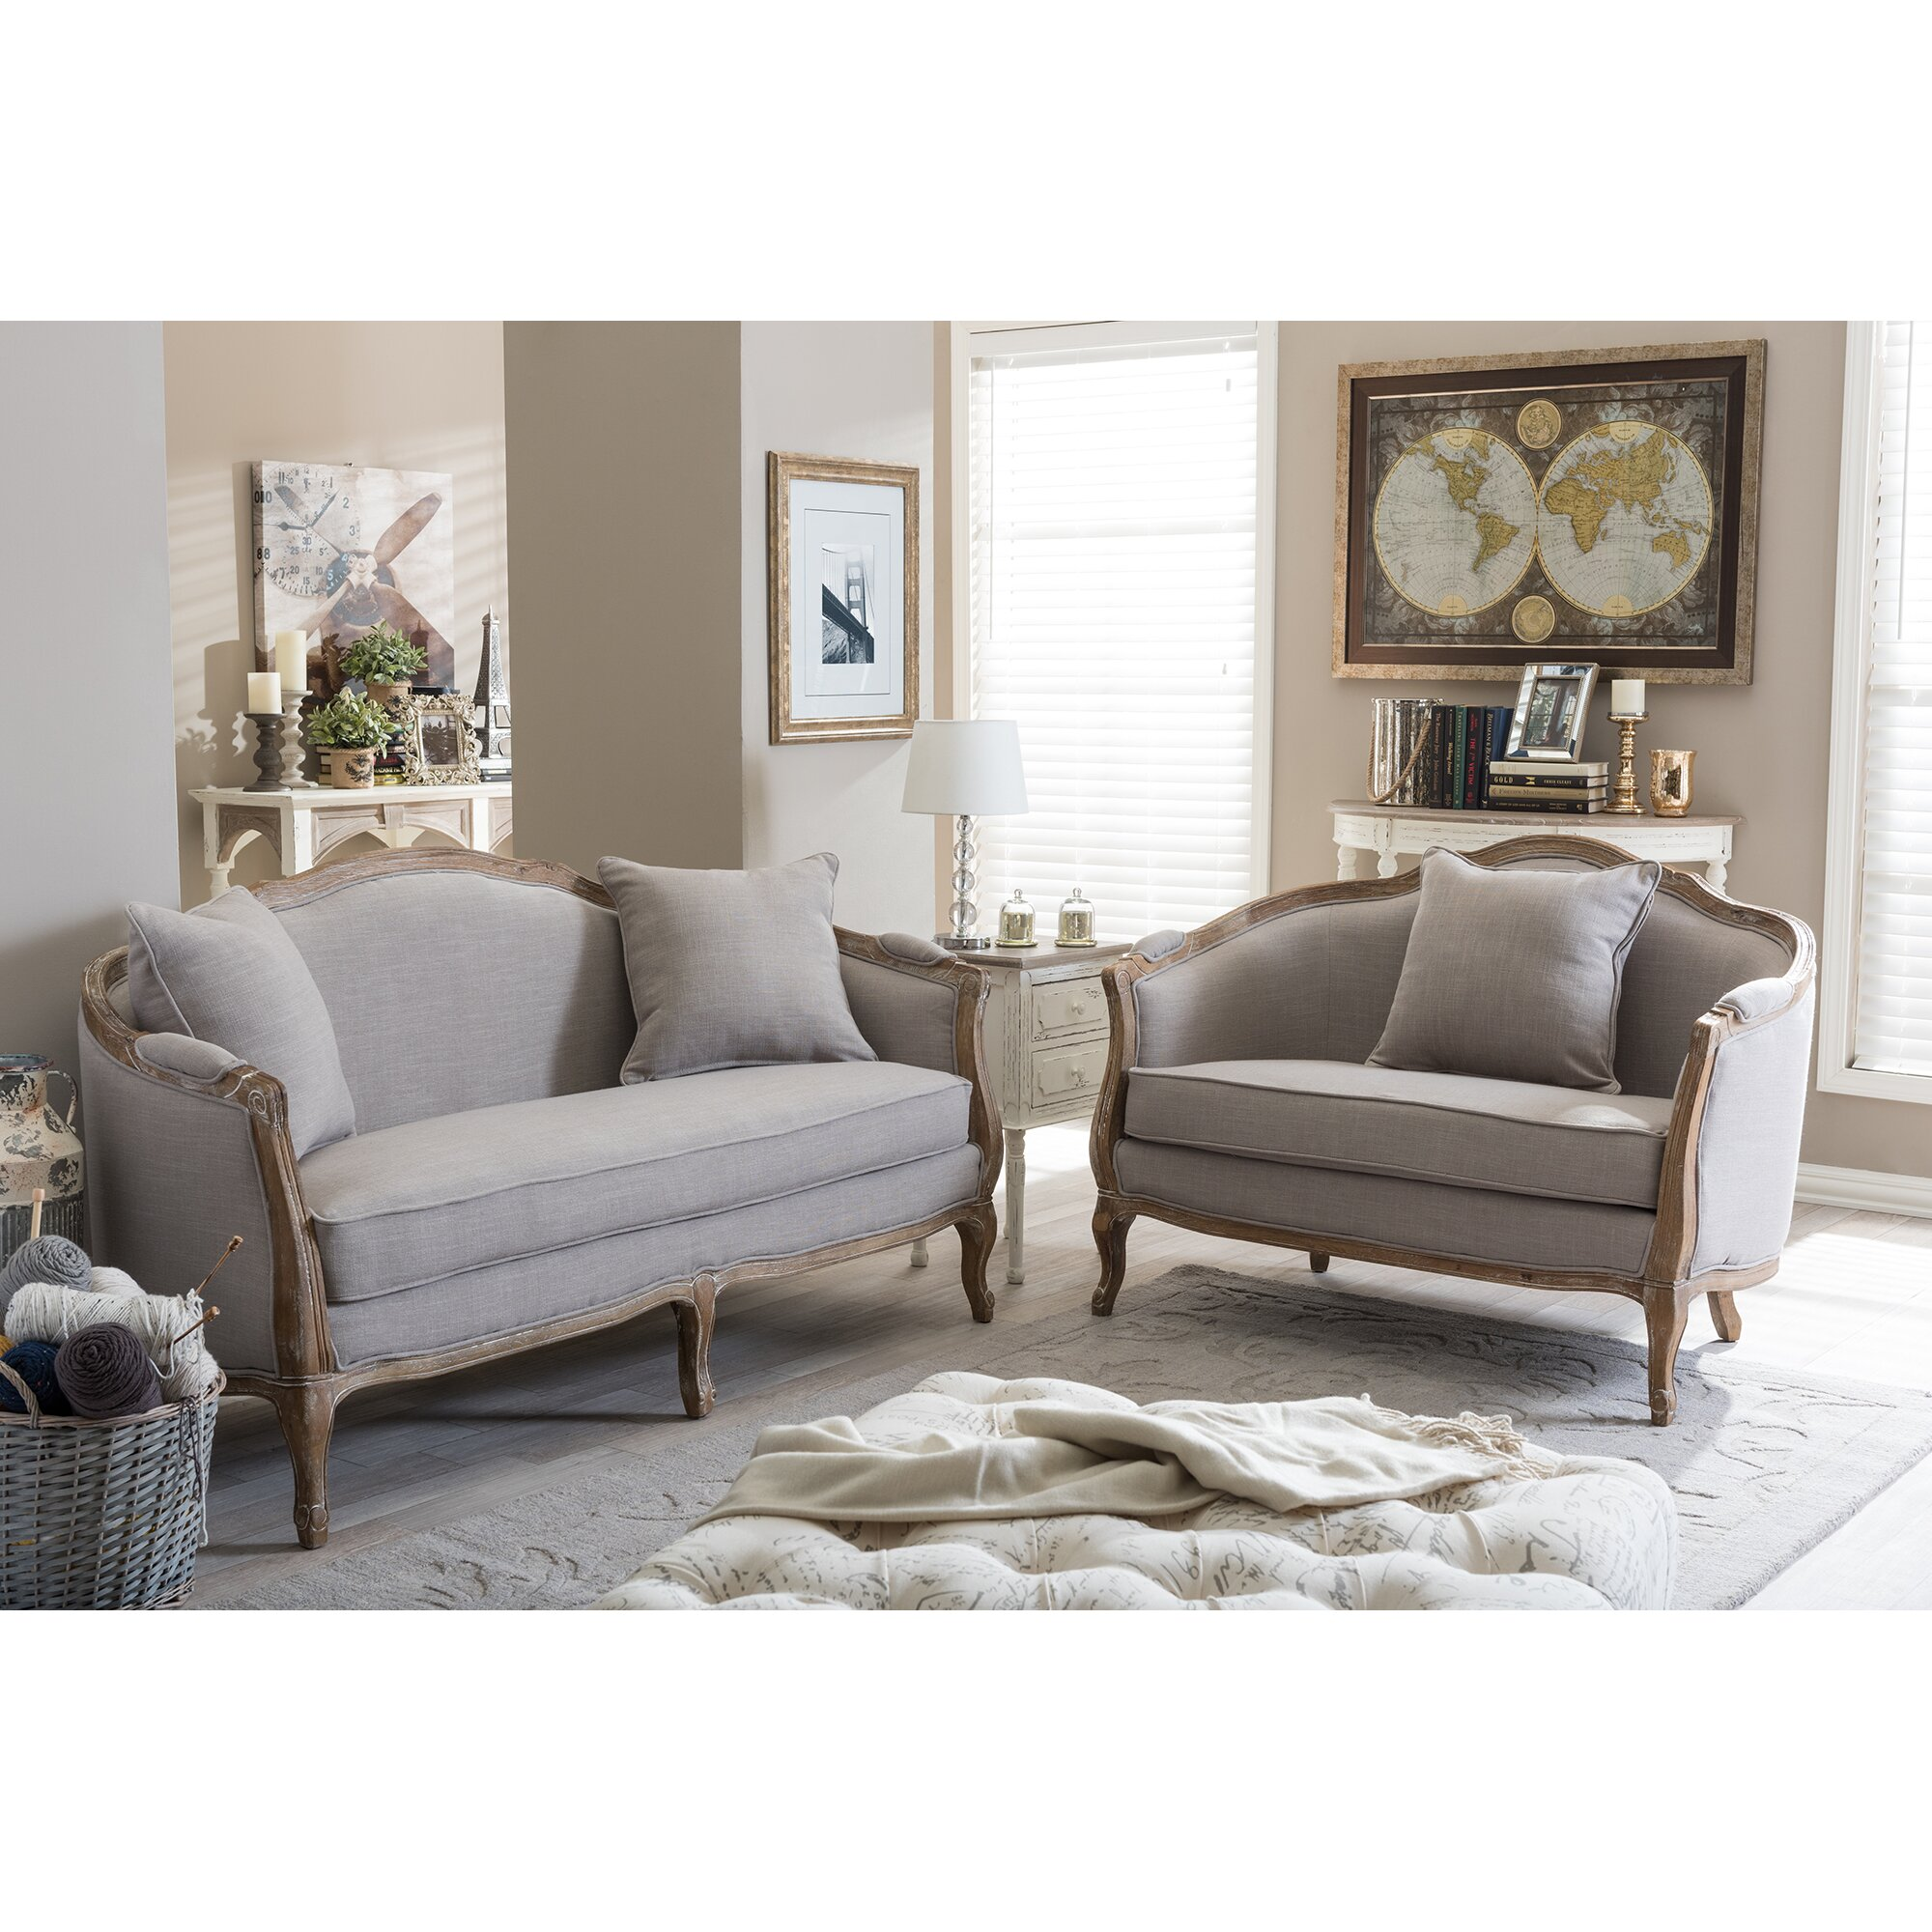 Baxton studio benito sofa and loveseat set wayfair Living room furniture sets studio